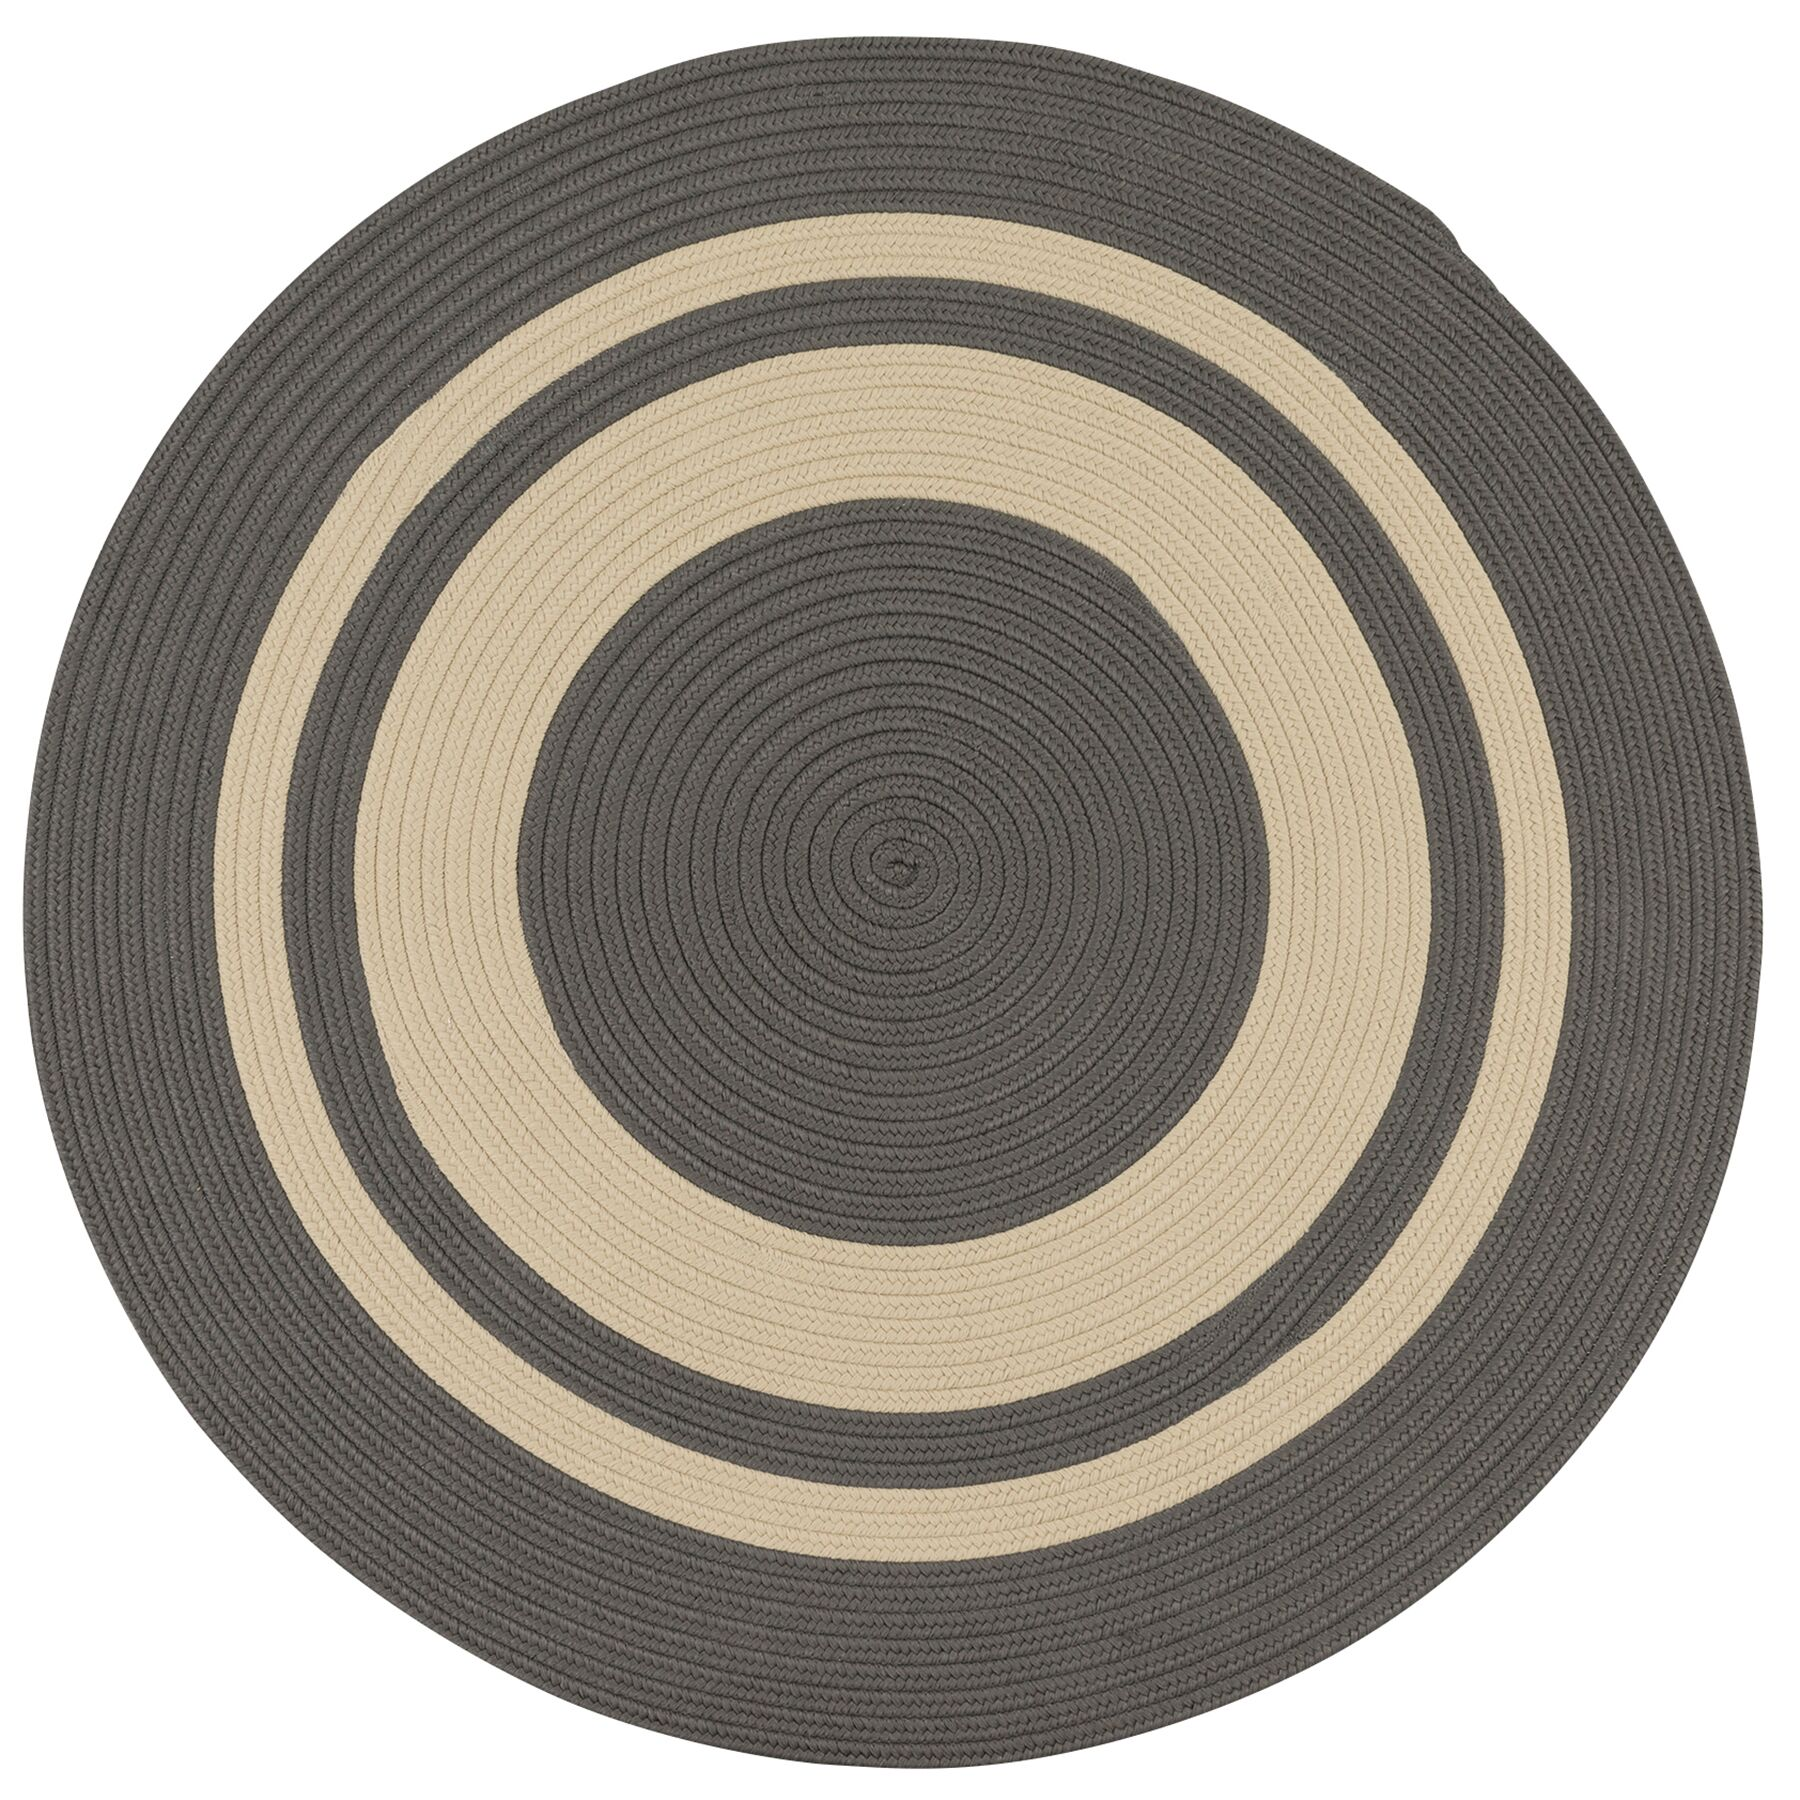 Don Hand-Braided Gray/Biege Indoor/Outdoor Area Rug Rug Size: Round 5'